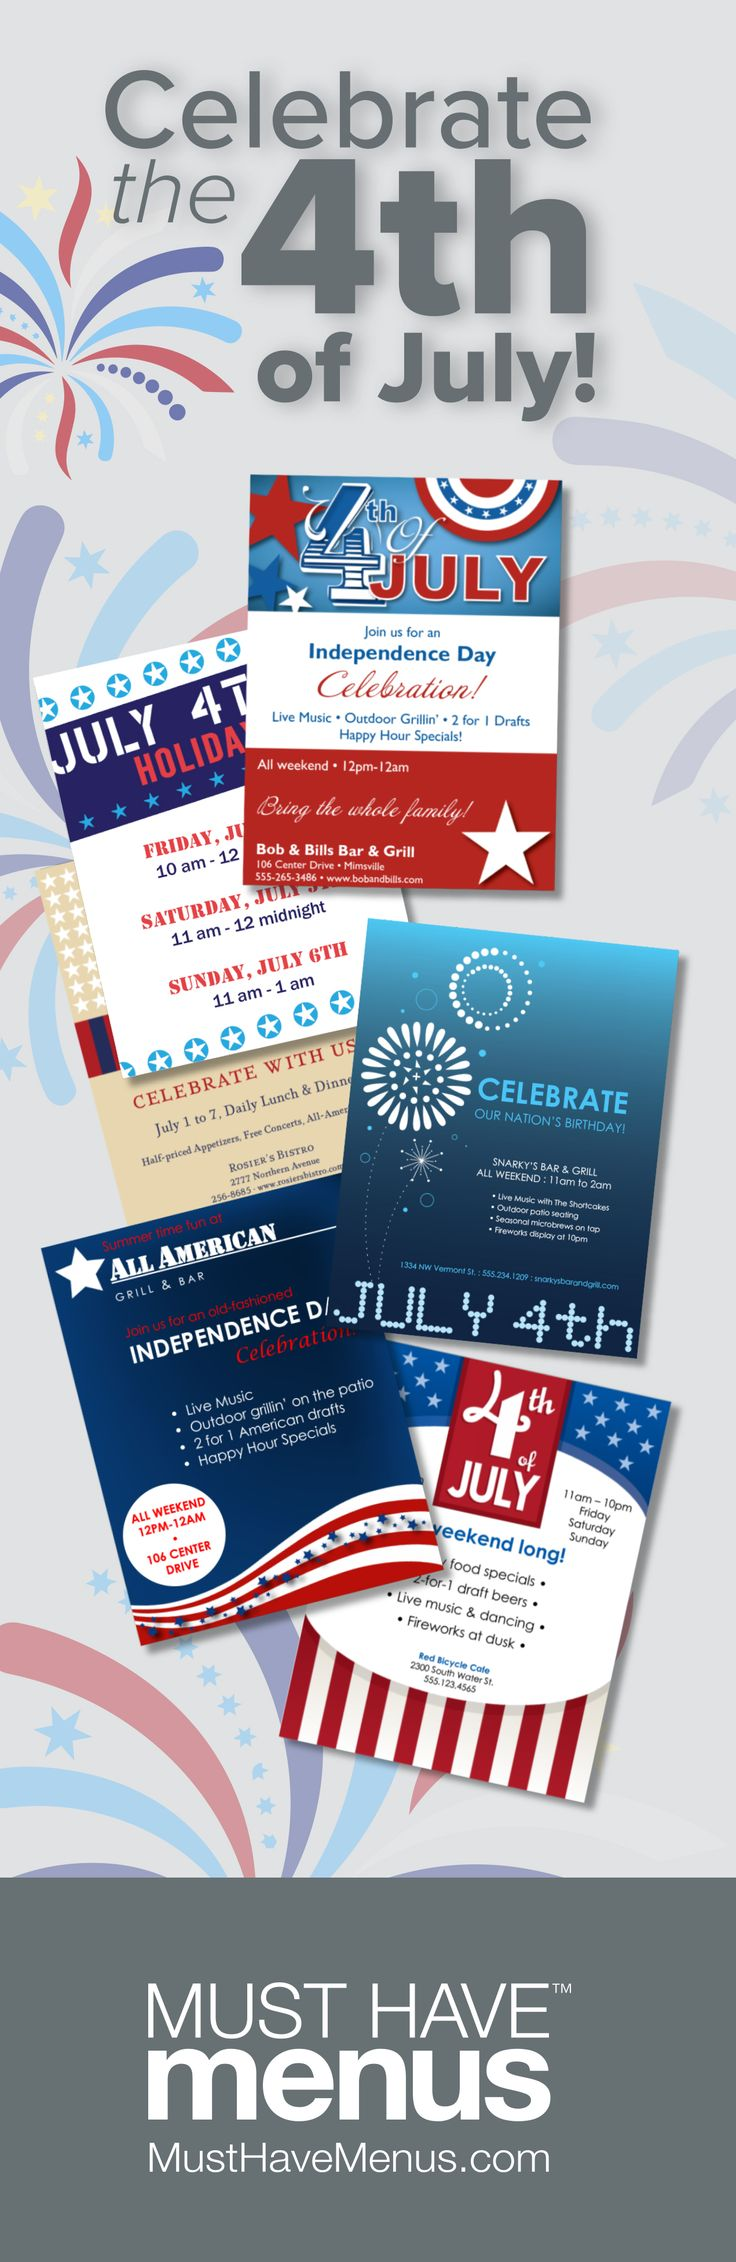 4th of july restaurant deals